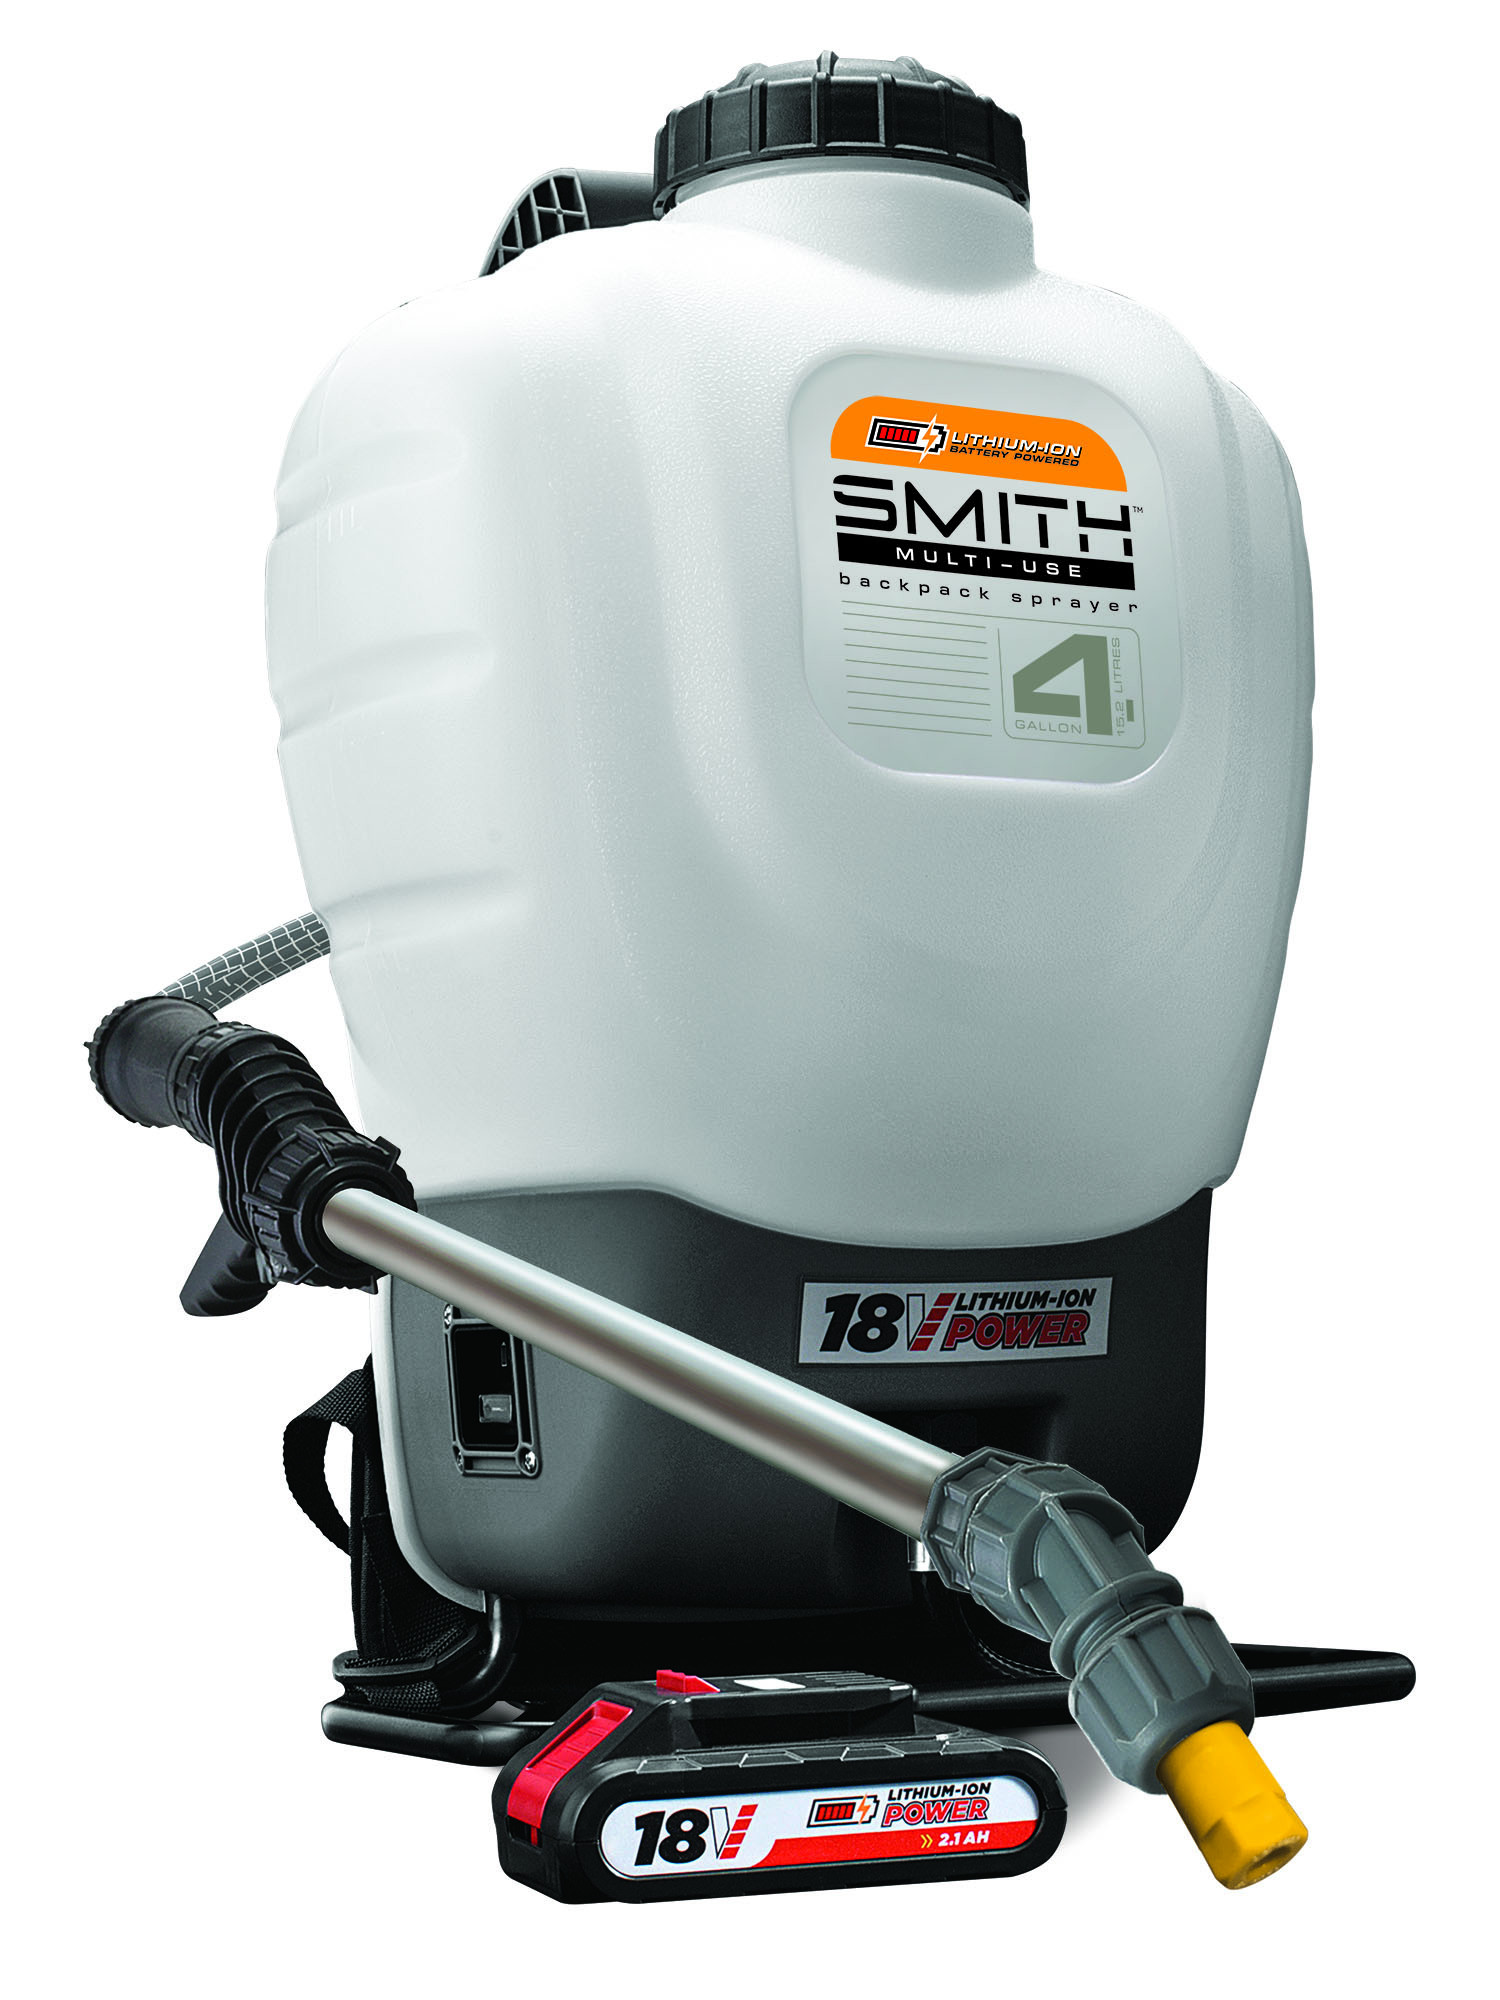 Smith Multi-Use 18V Lithium-ion Powered Disinfecting Backpack Sprayer, Model 190676